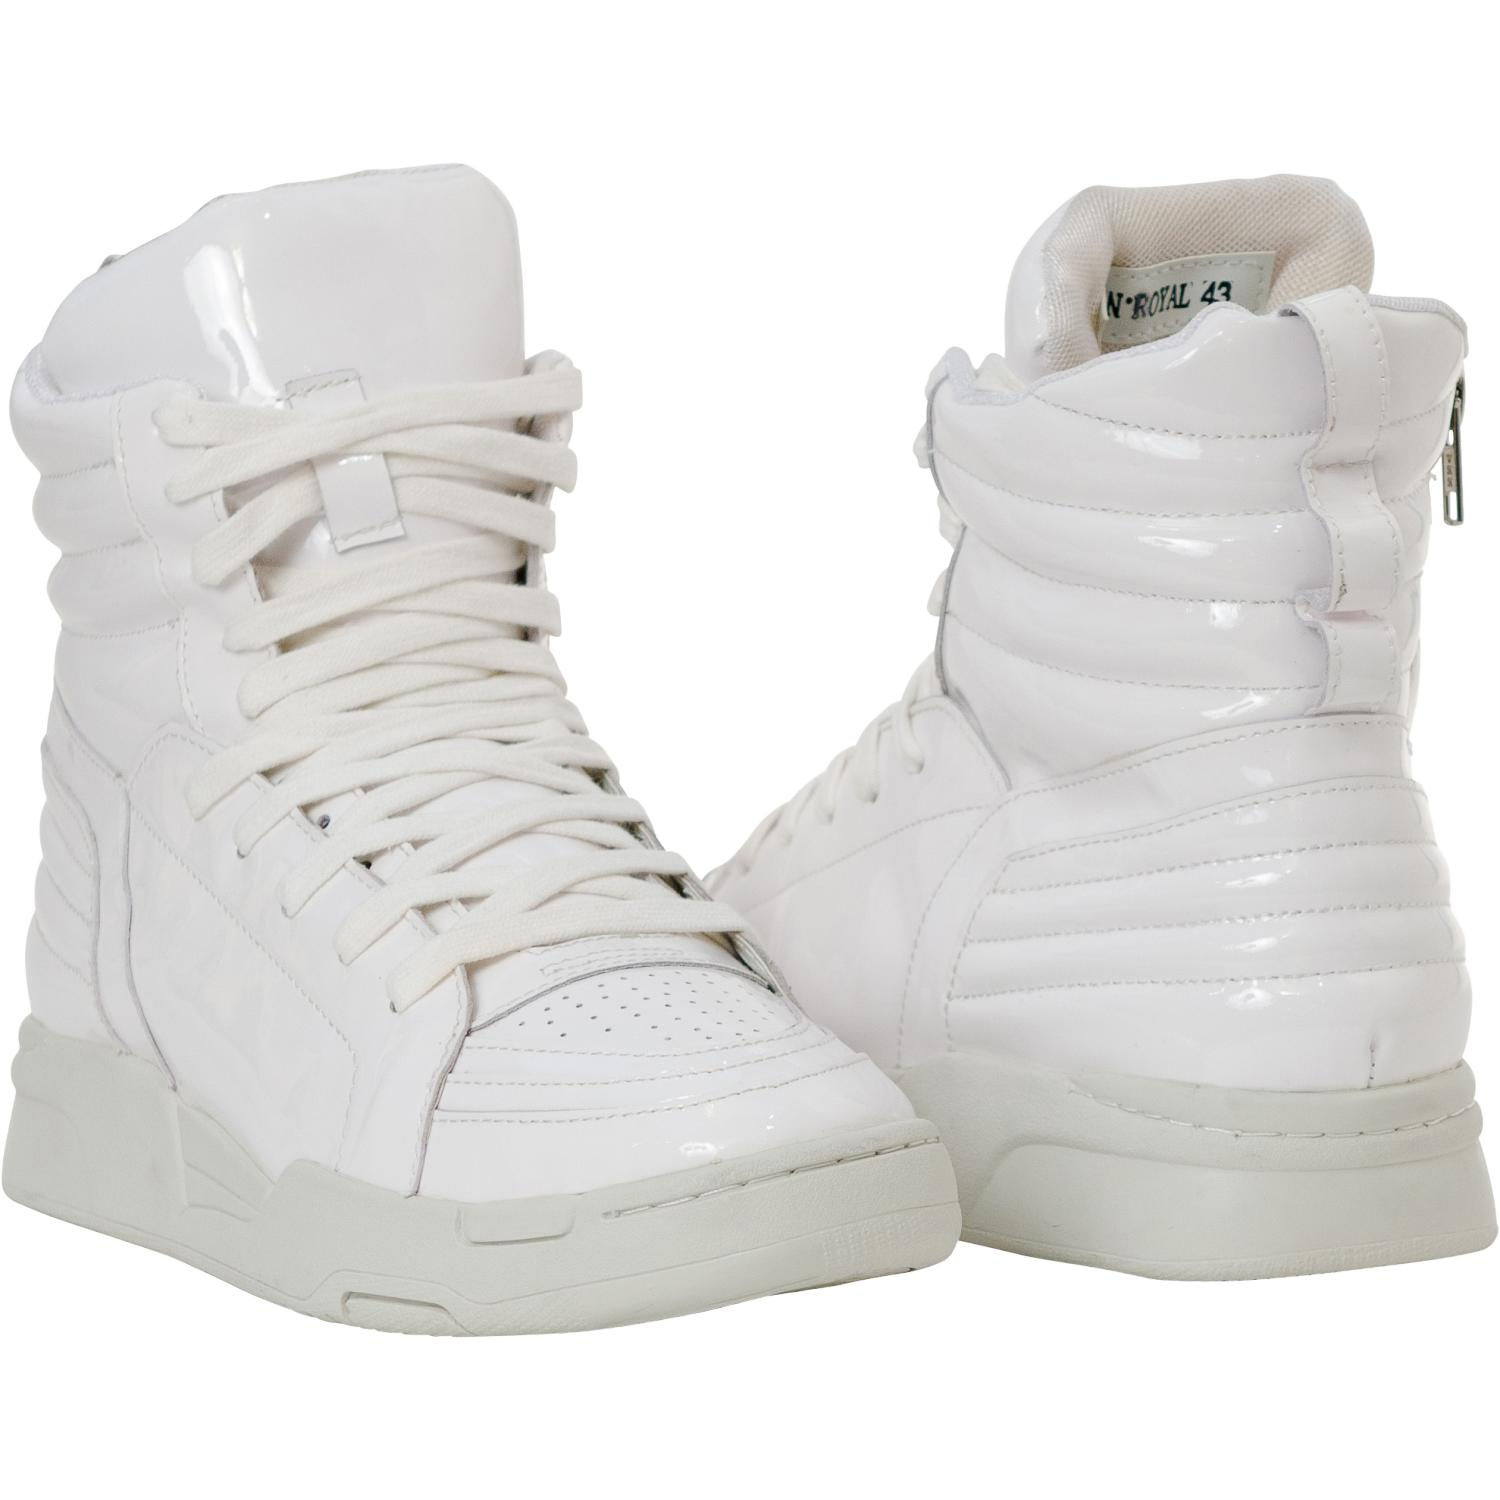 Breakin39 Royal White Patent Leather High Top Sneakers